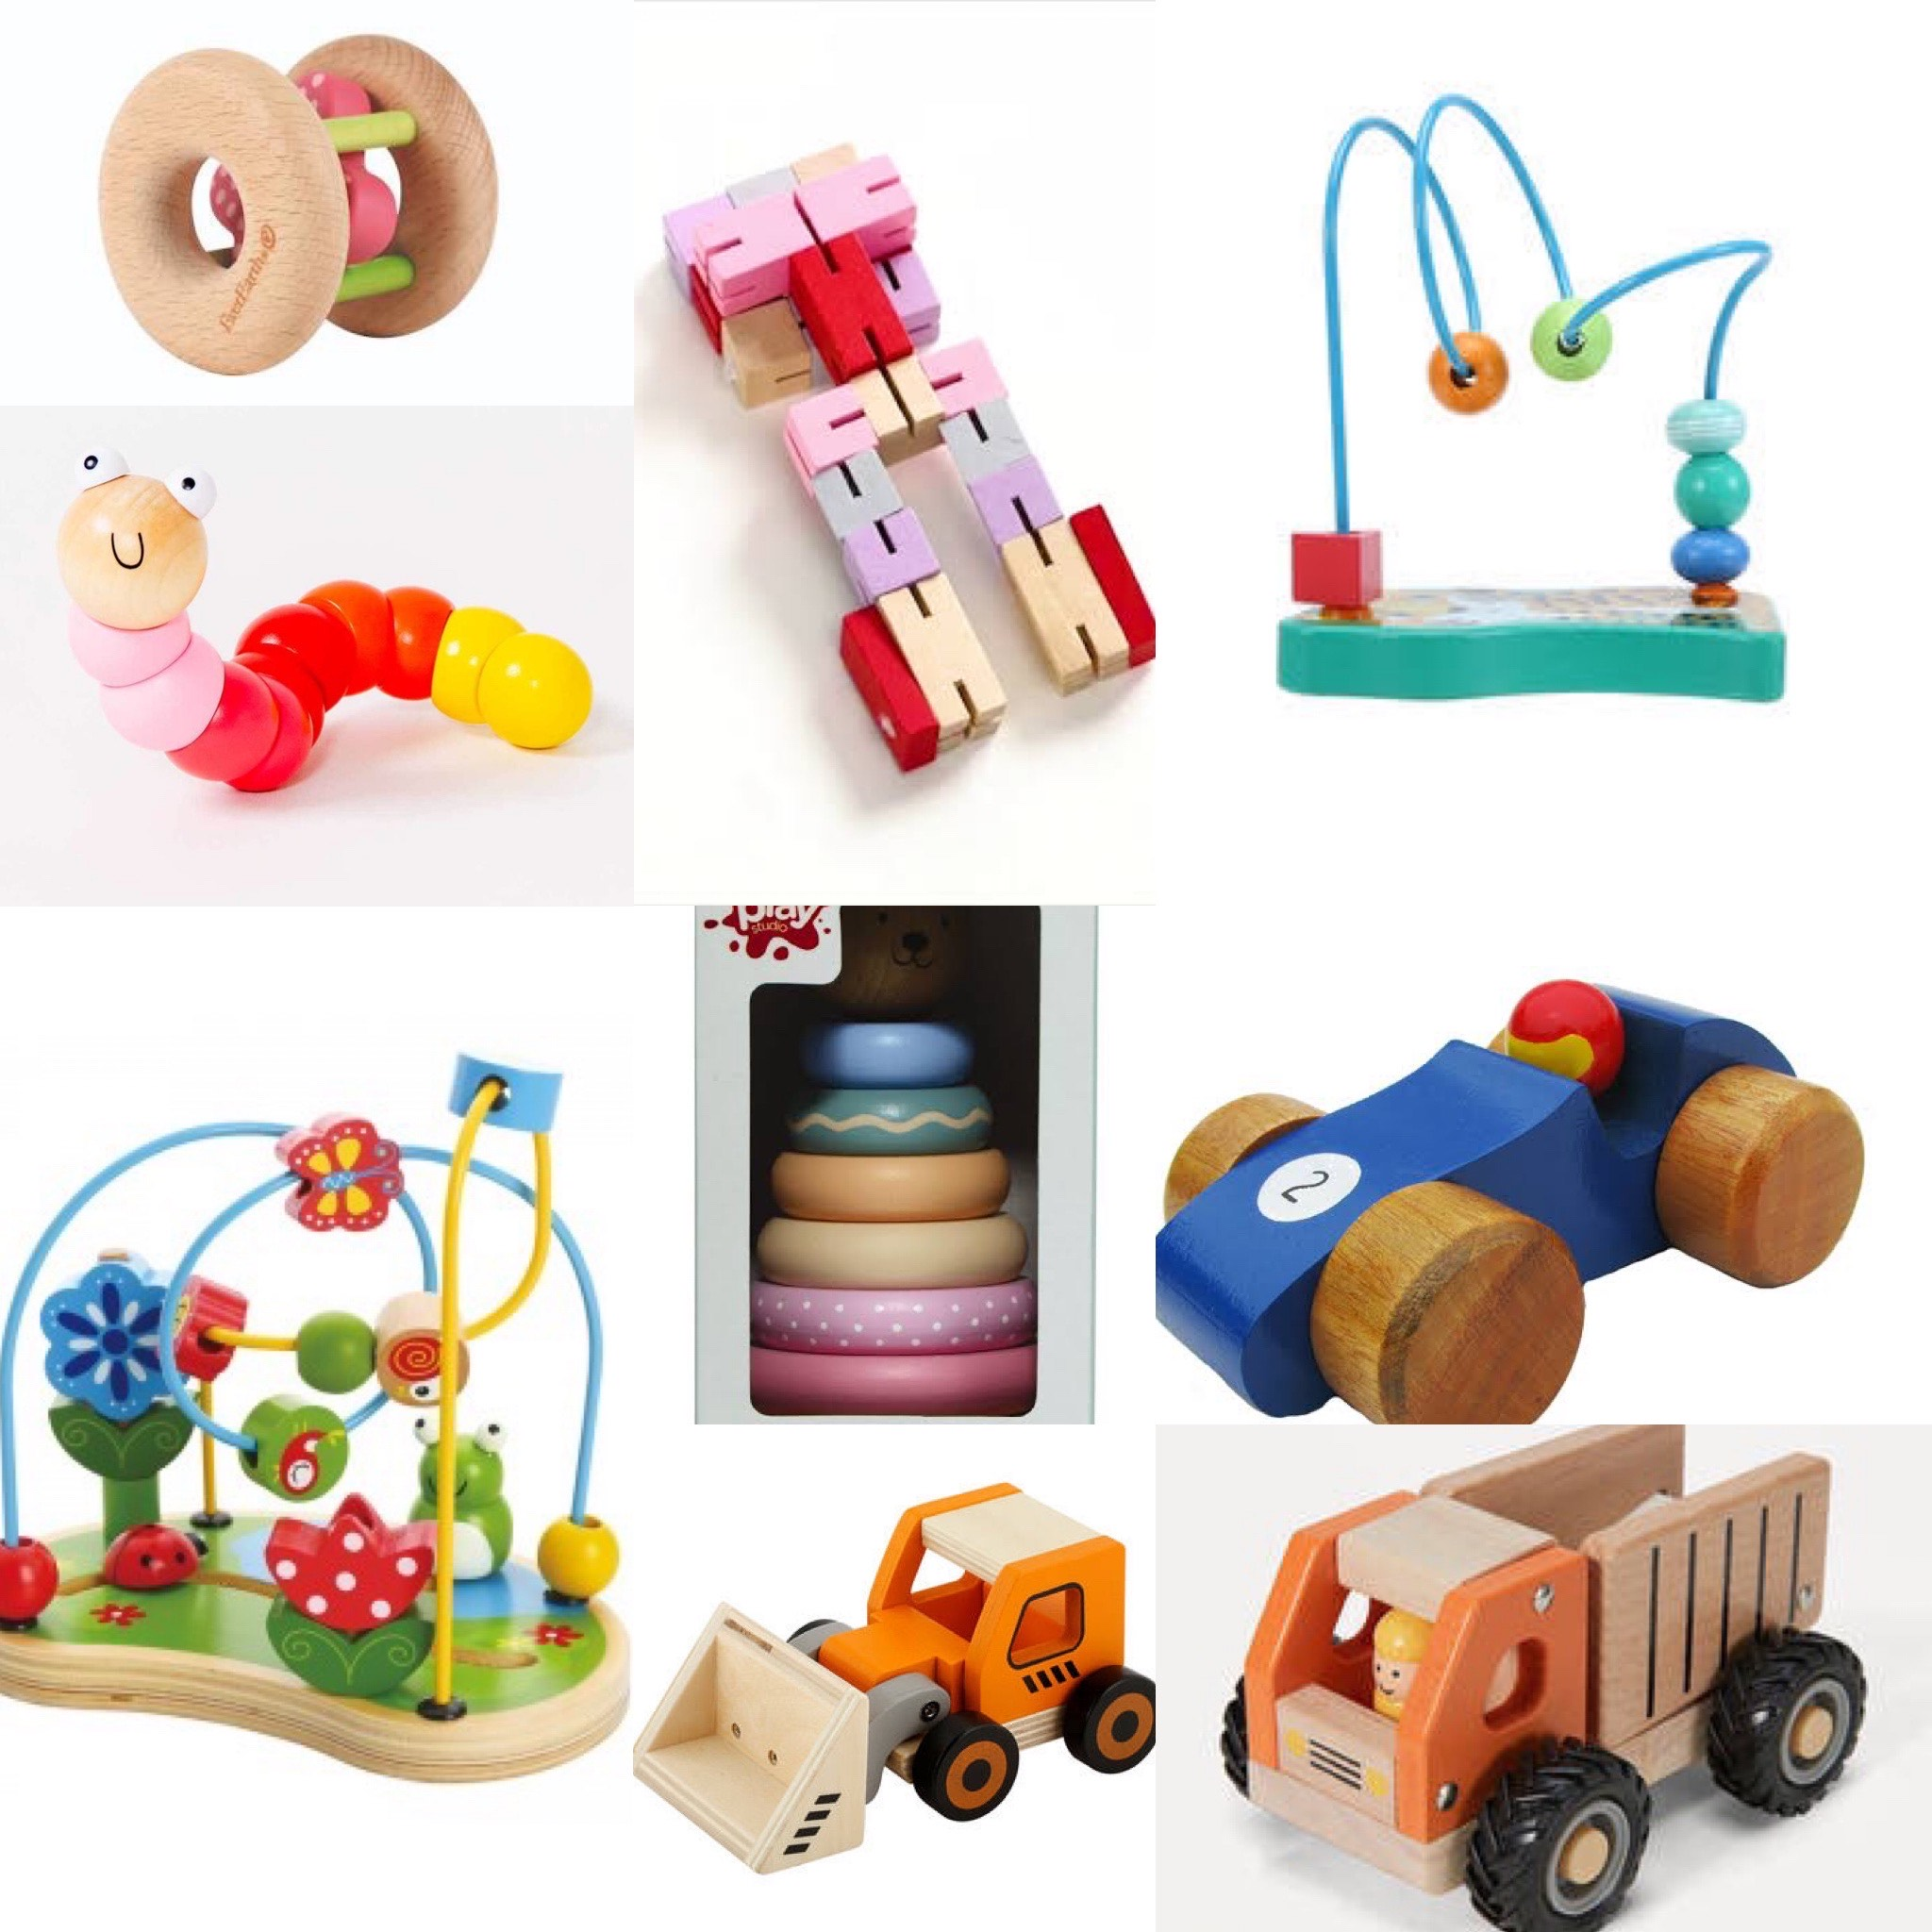 Assorted Wooden Baby Toys photo